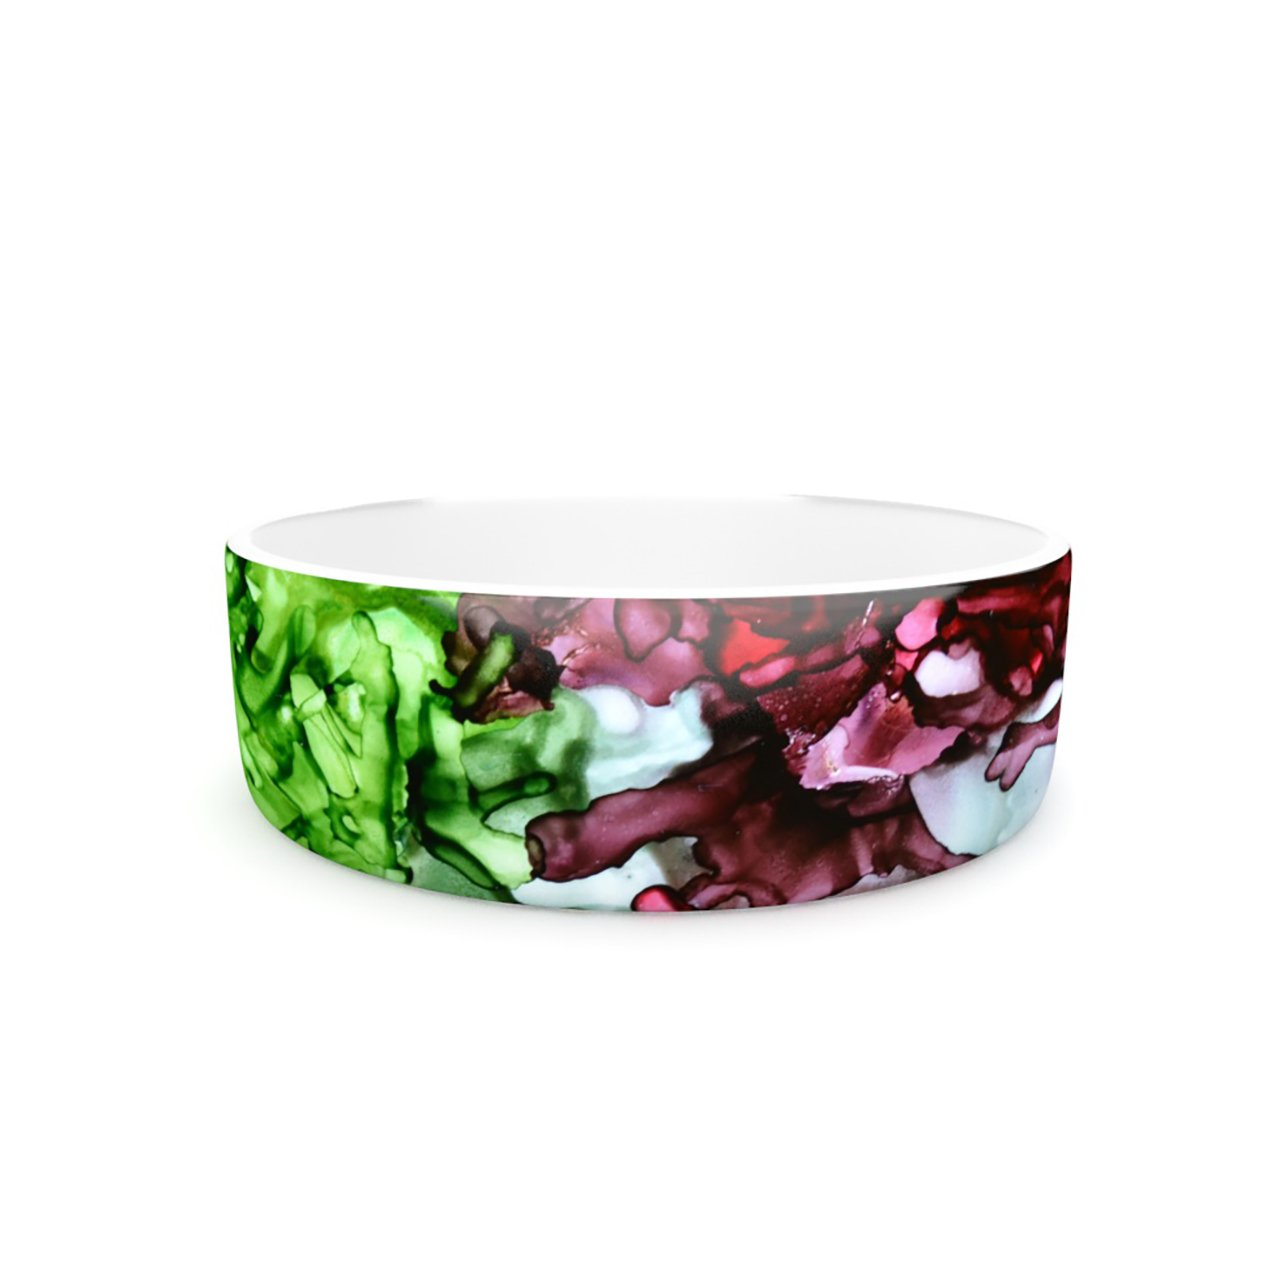 Kess InHouse Claire Day TMNT Pet Bowl, 7-Inch, Green Maroon